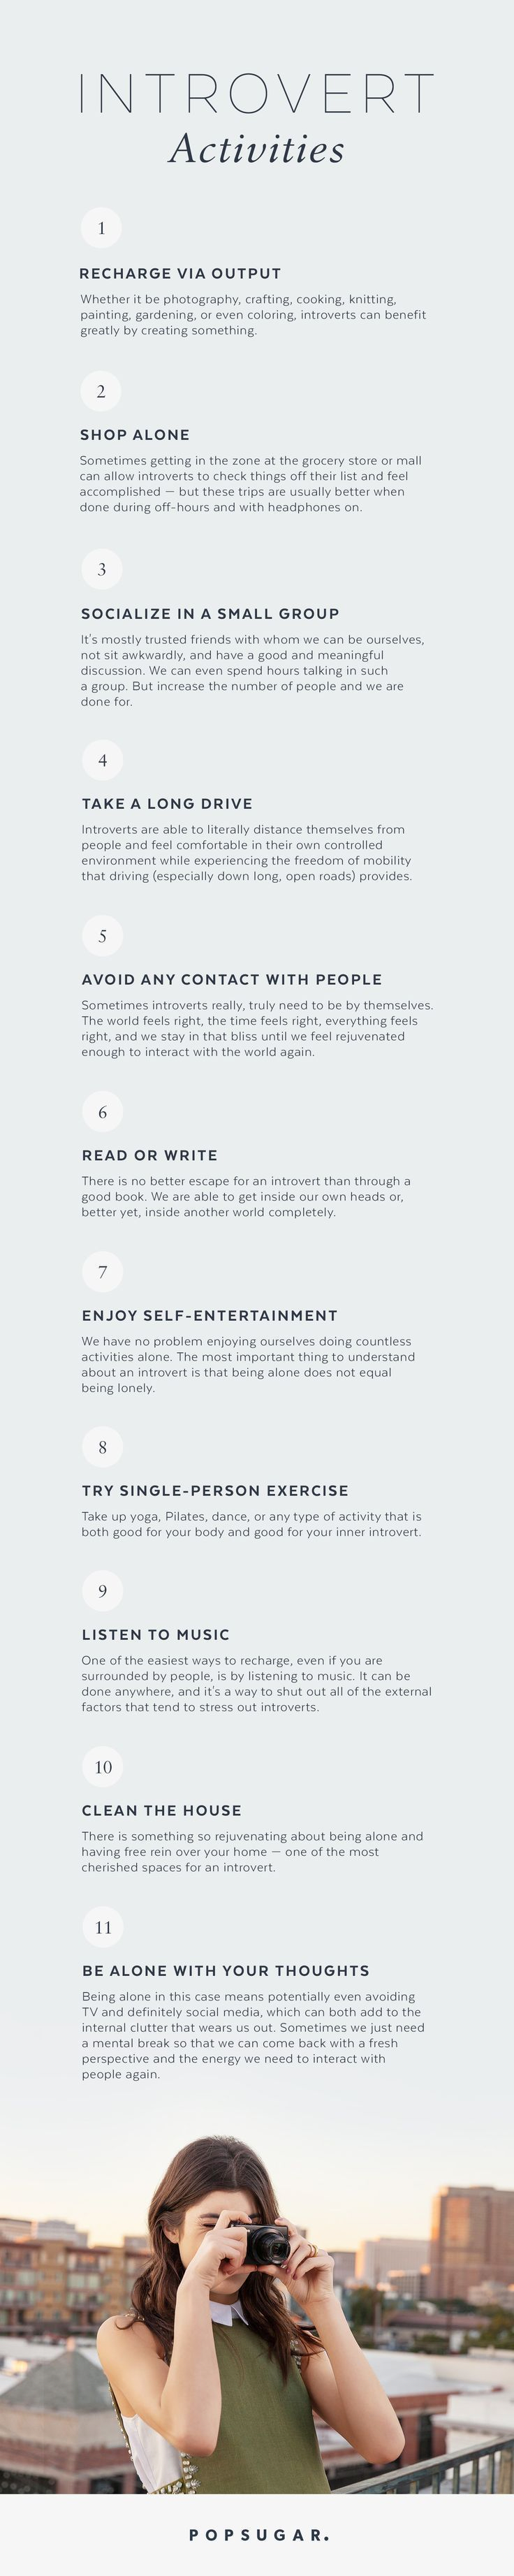 Tips for introverts.